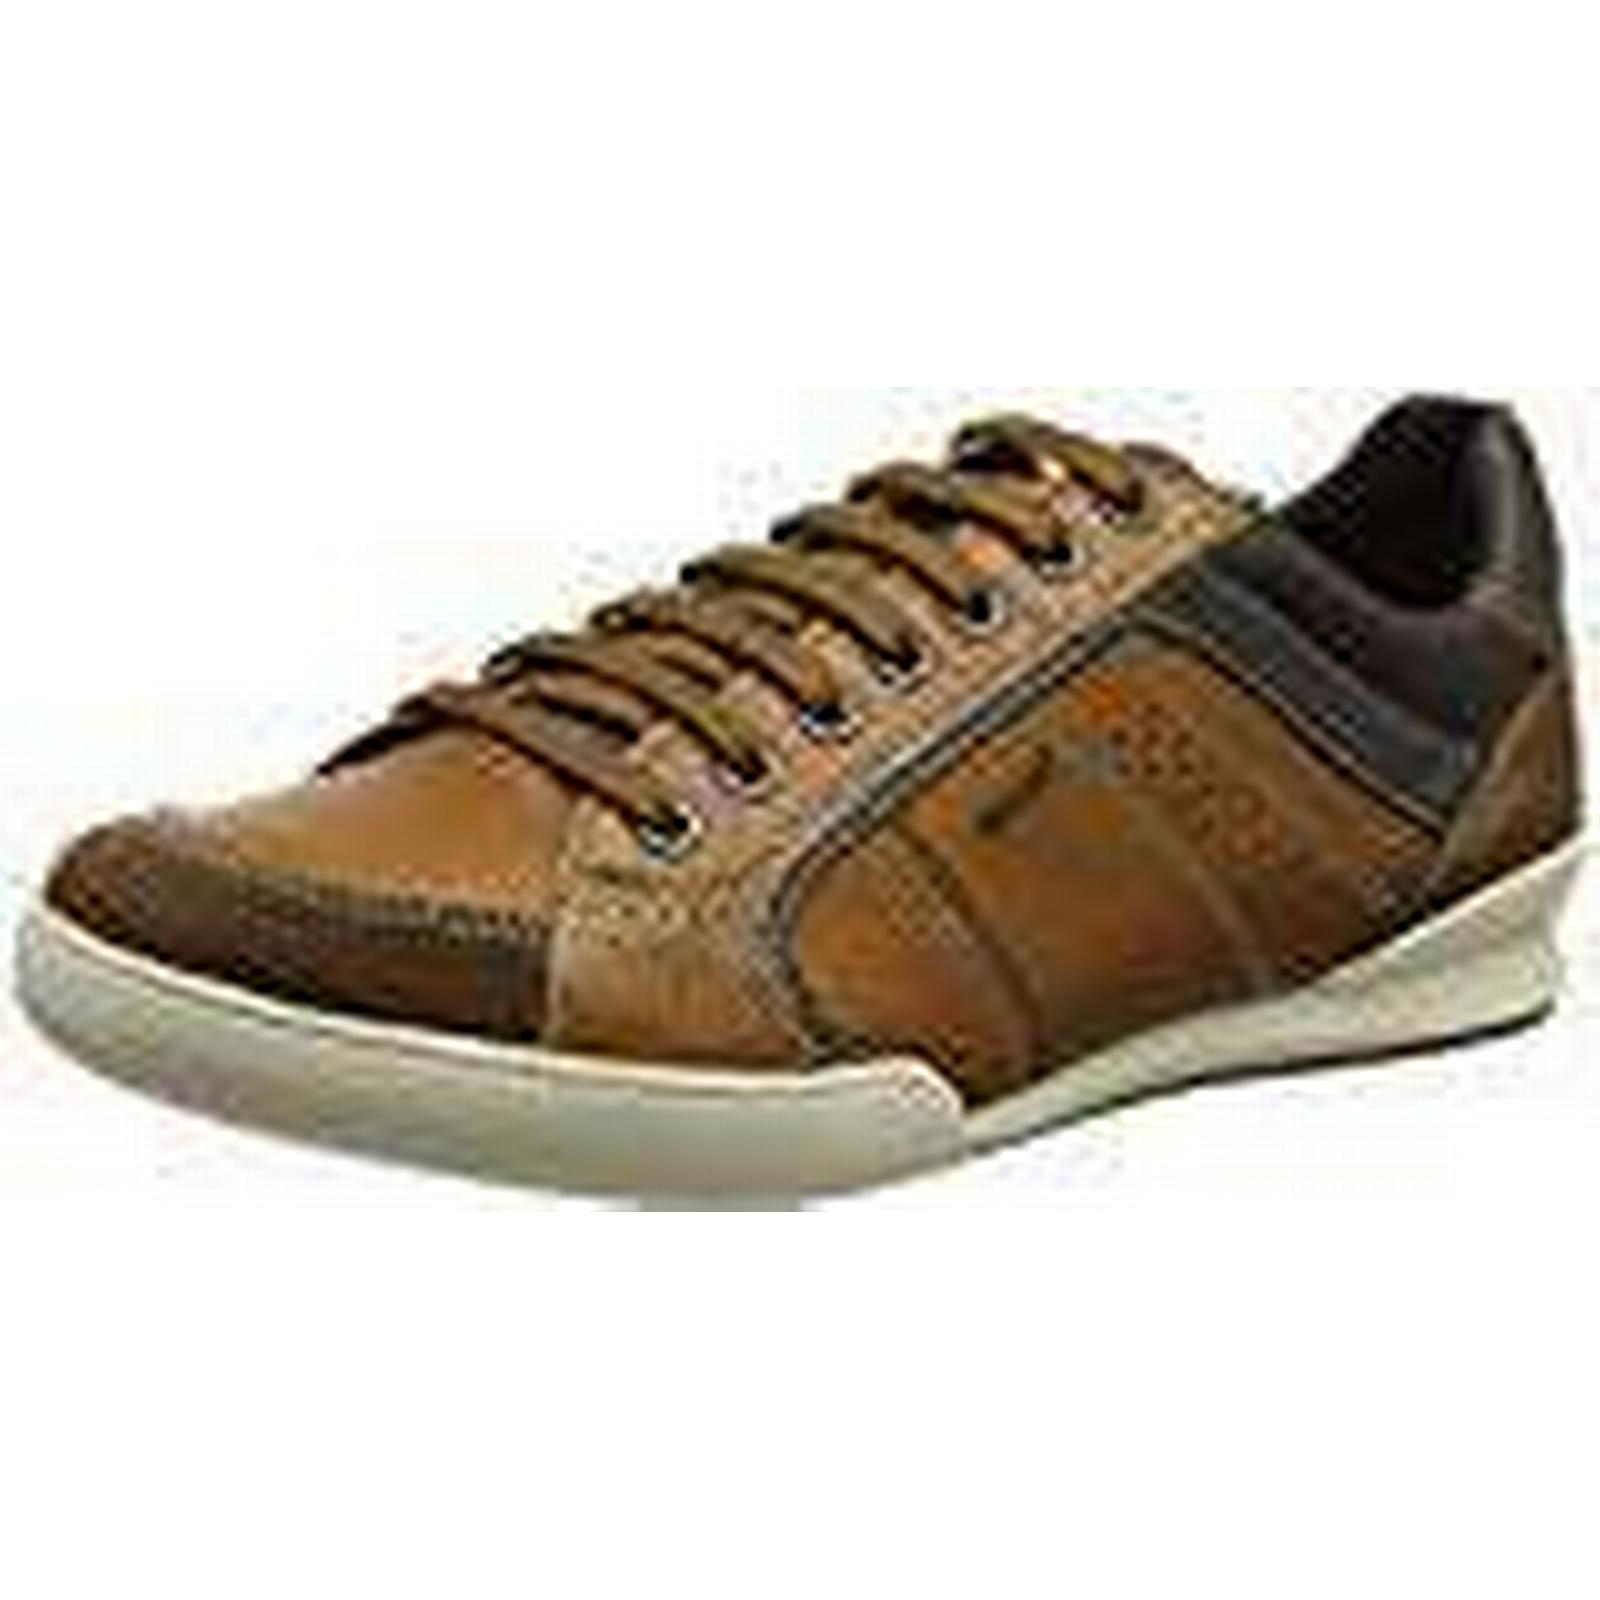 Geox Men''s Sneakers, U Kristof A Low-Top Sneakers, Men''s Brown (Cognac/browncotto), 6 UK 6 UK a68484